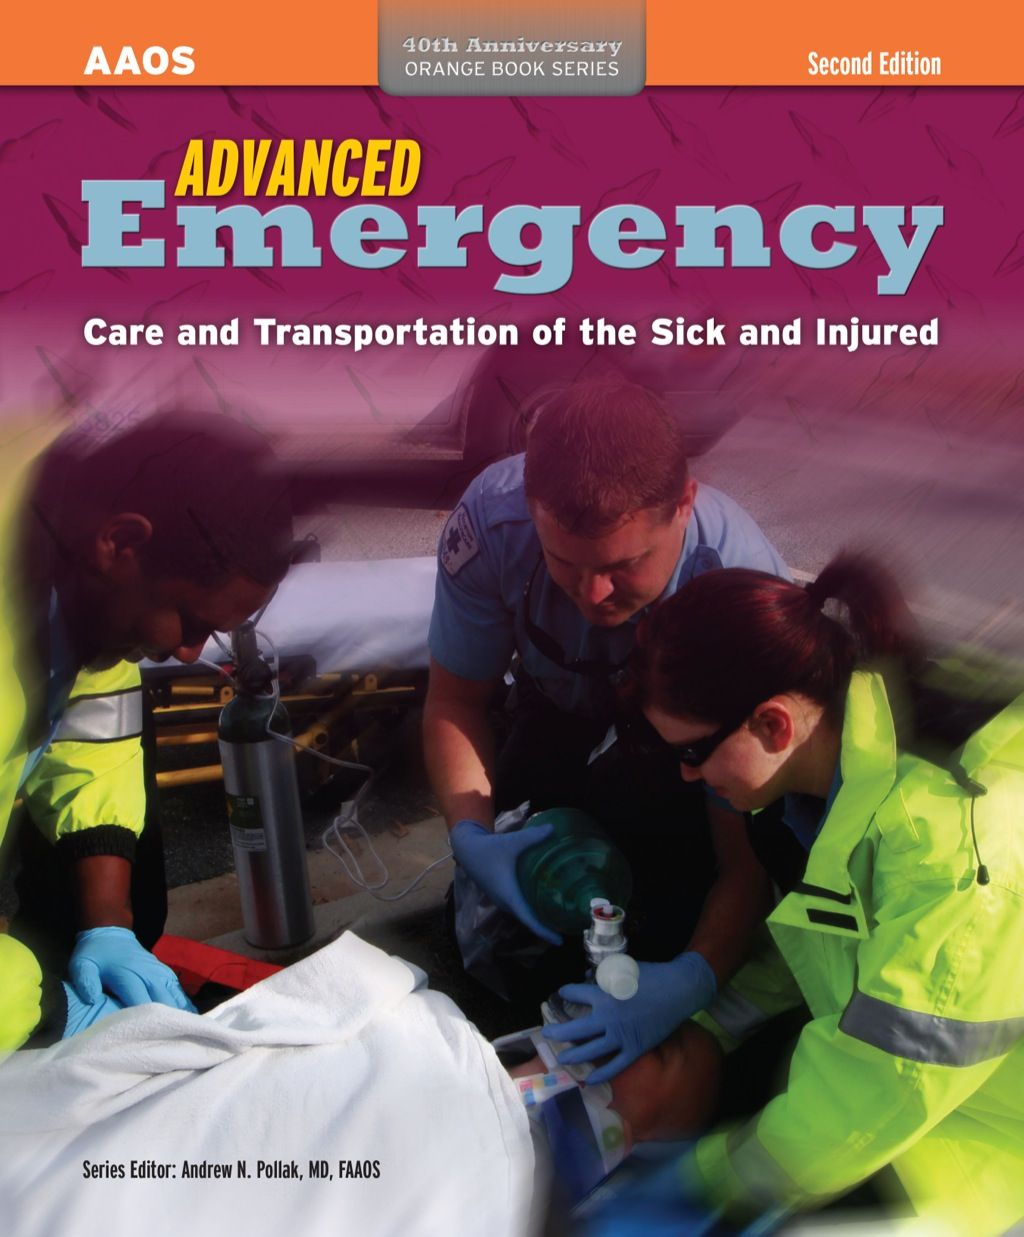 Advanced Emergency Care And Transportation Of The Sick And Injured 2nd Edition Ebook Rental In 2021 Emergency Care Orange Book Ebook